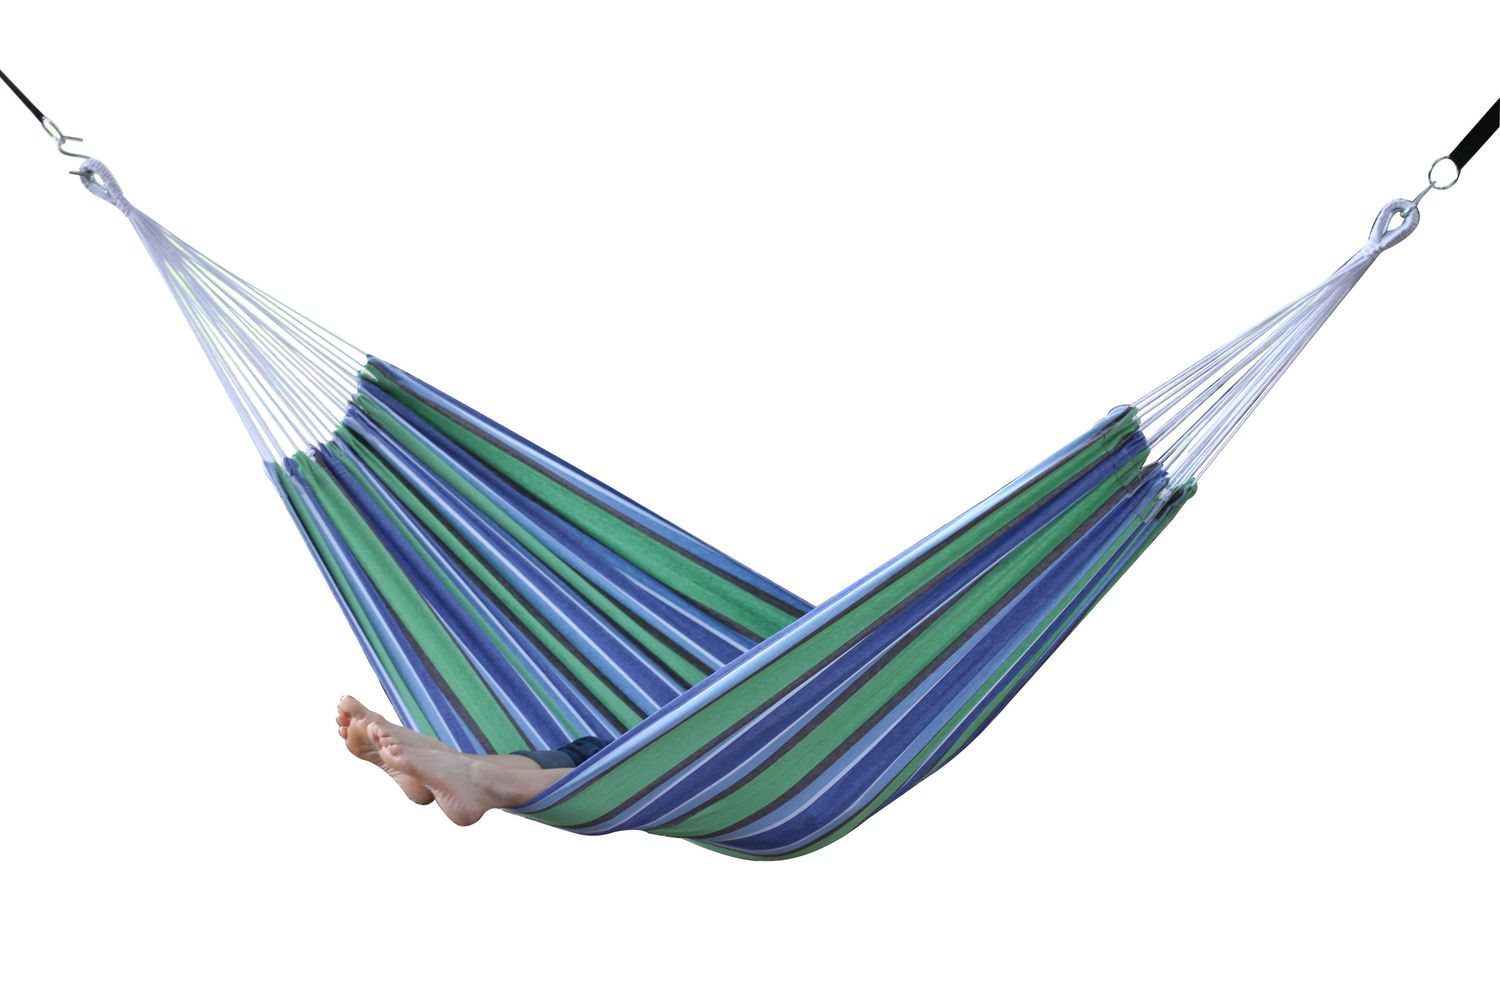 pack vivere friendly accessories larger hammock view tree hammocks straps eco efhts